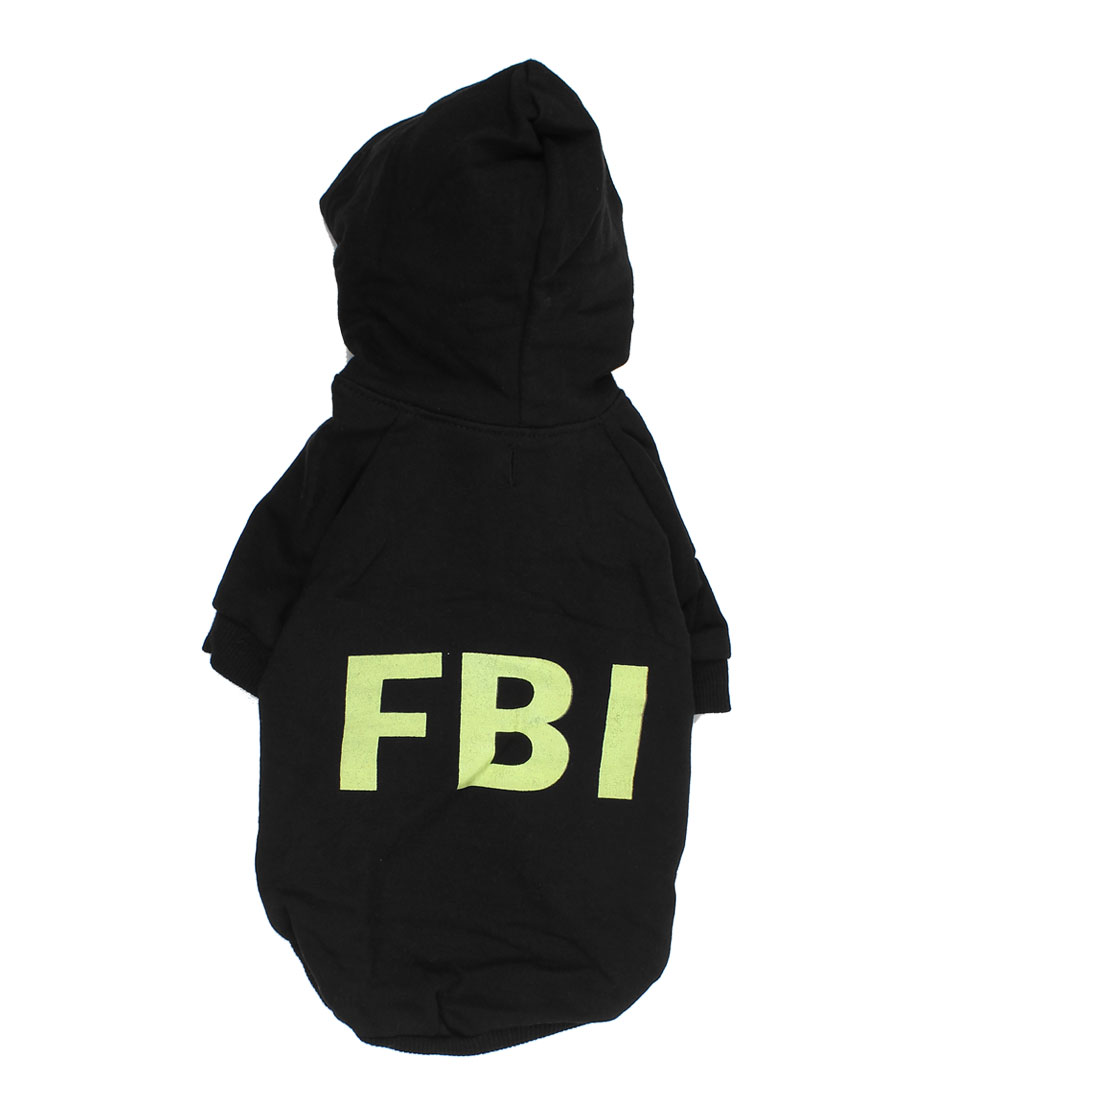 FBI Pet Doggie Yorkie Autumn Clothing Hoodie Coat Apparel Costume Black Size L